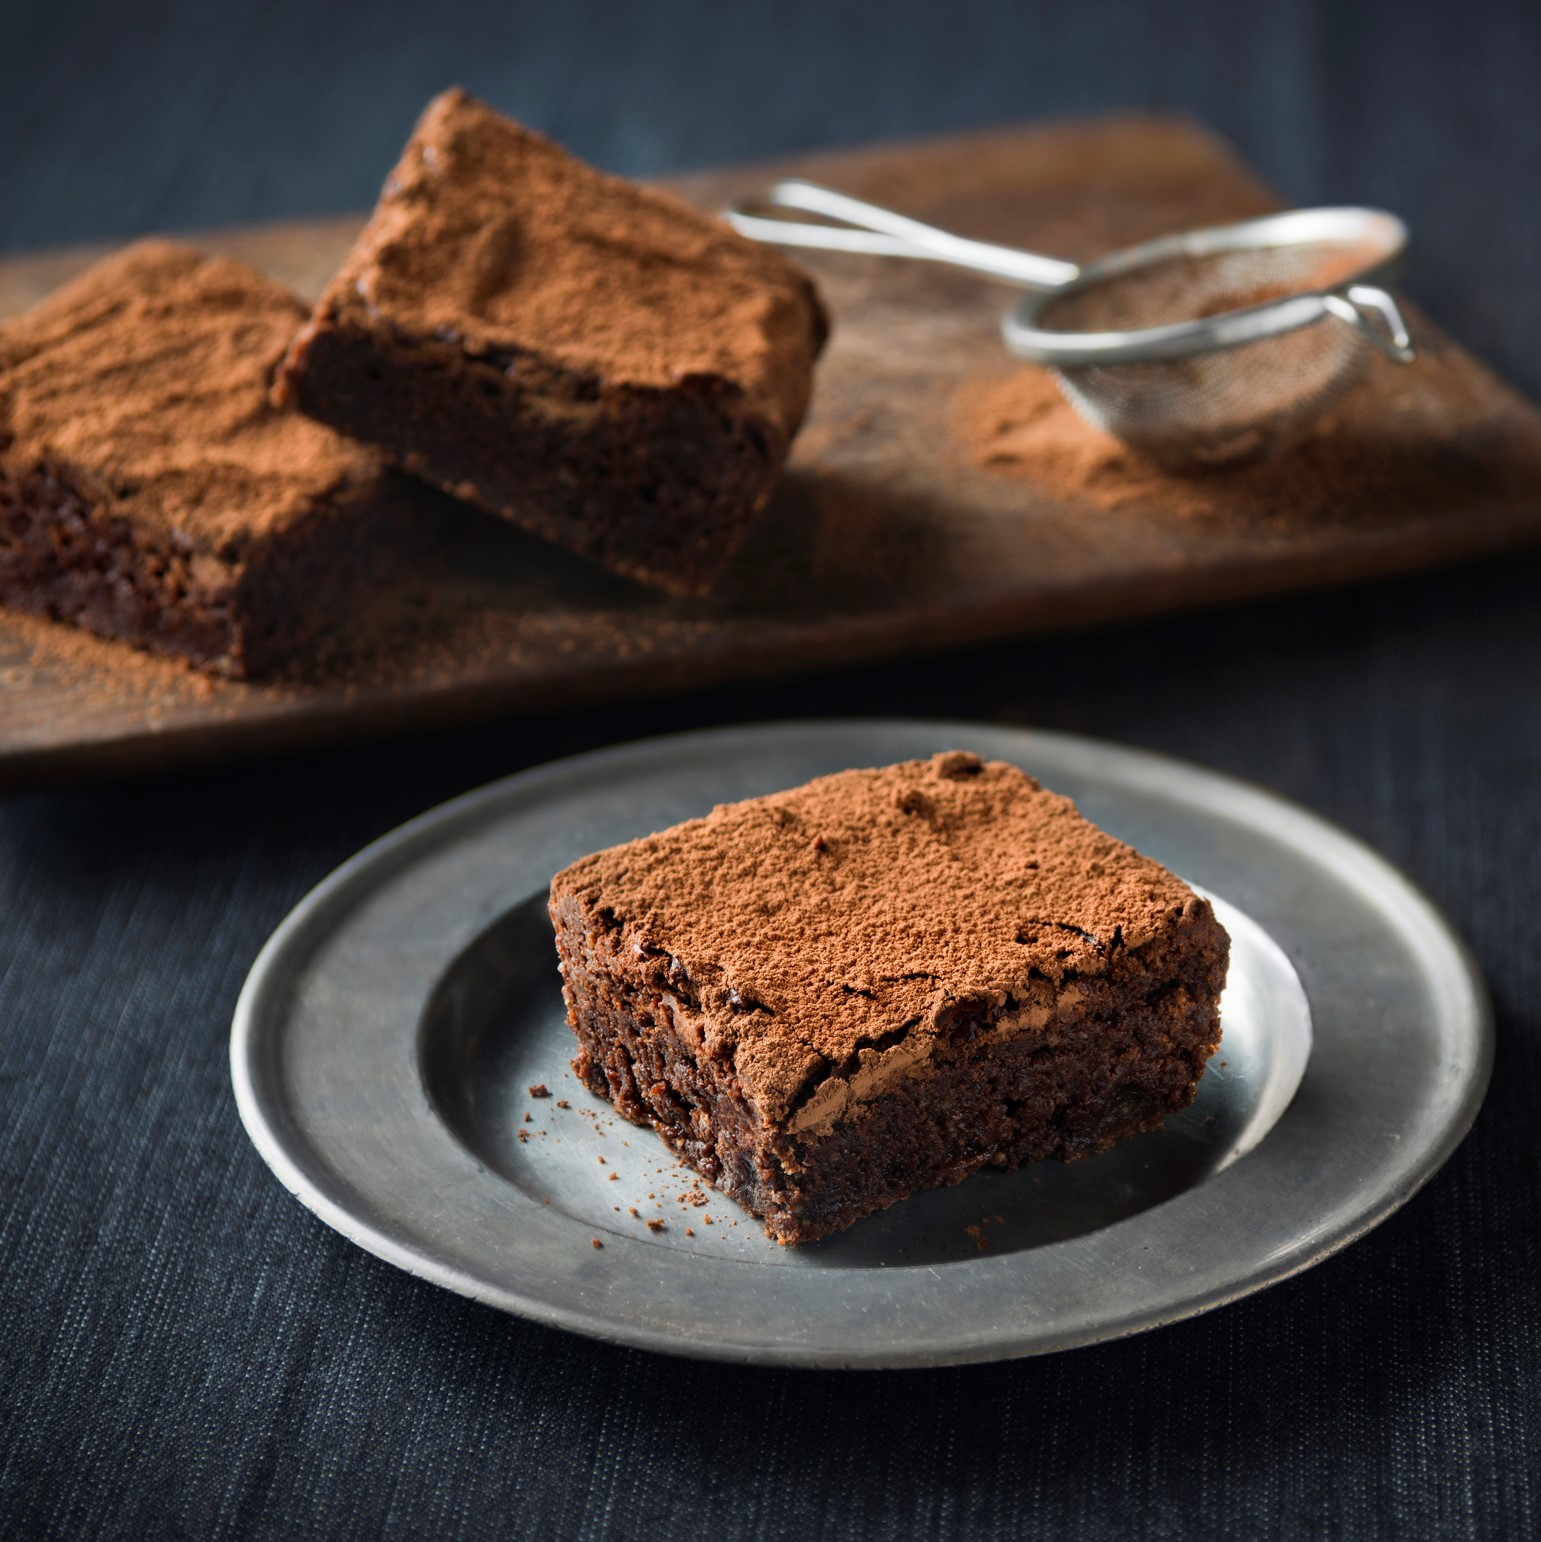 Haigh's Chocolate and Hazelnut Fudge Brownies